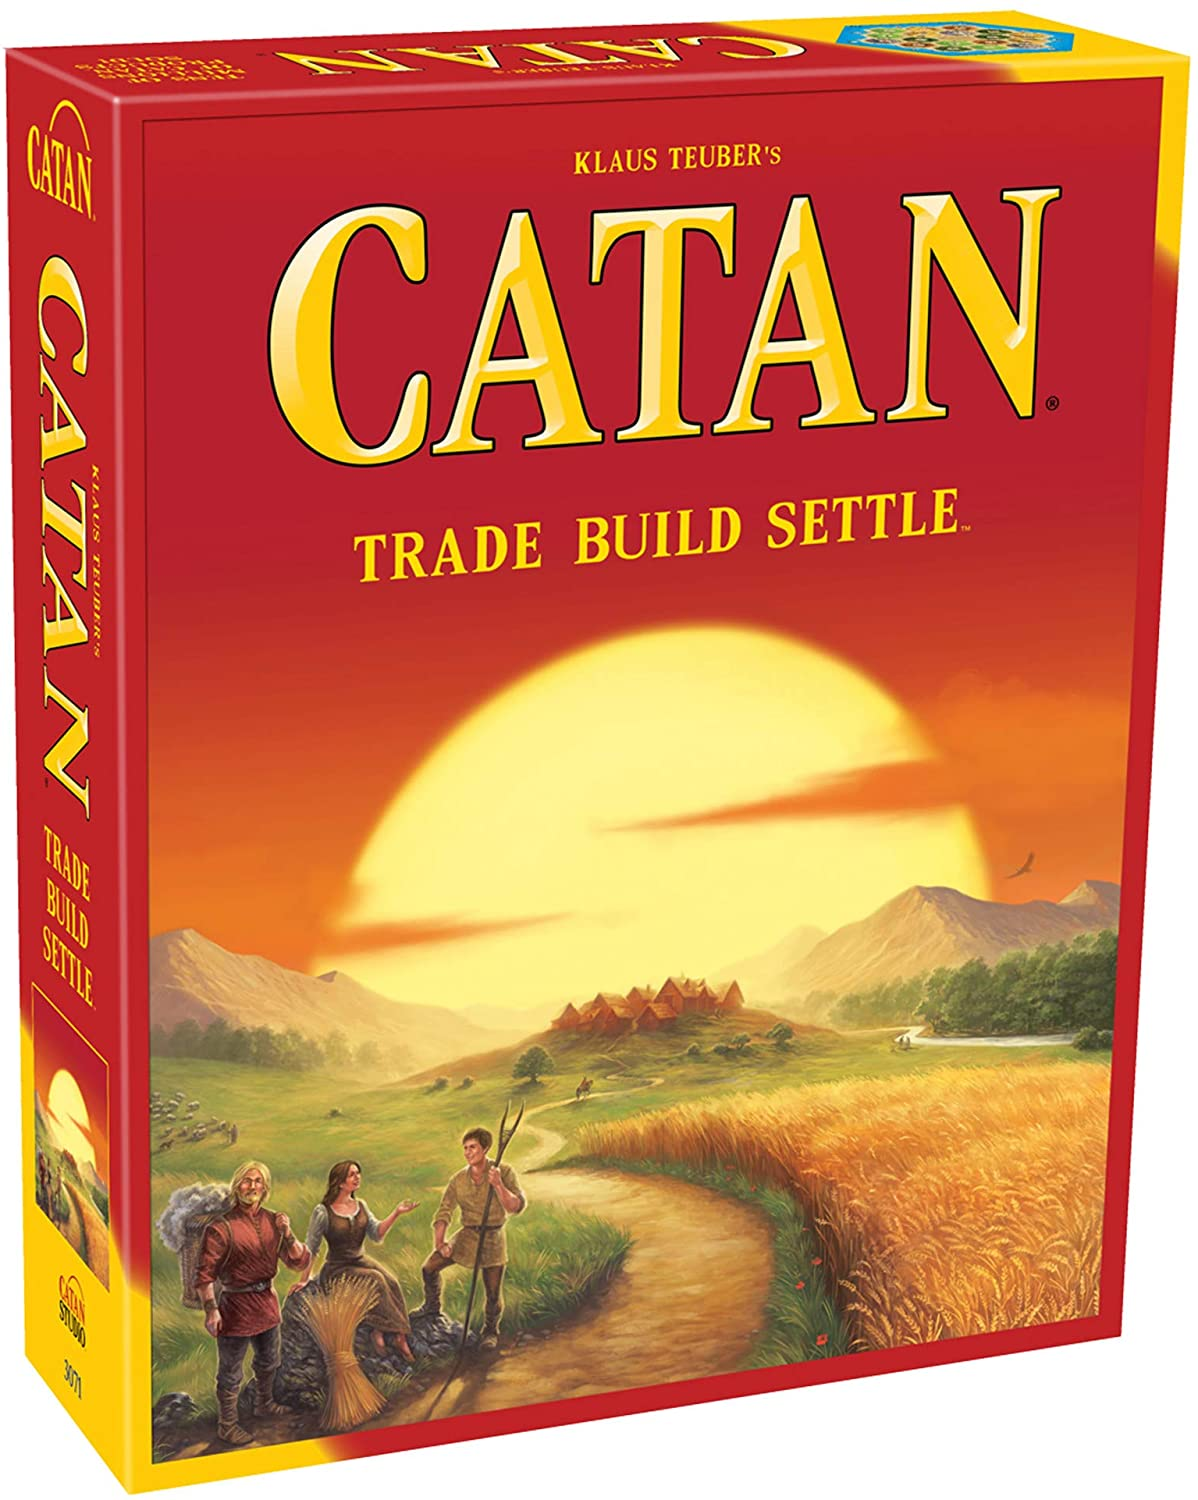 Catan best game for quarantine